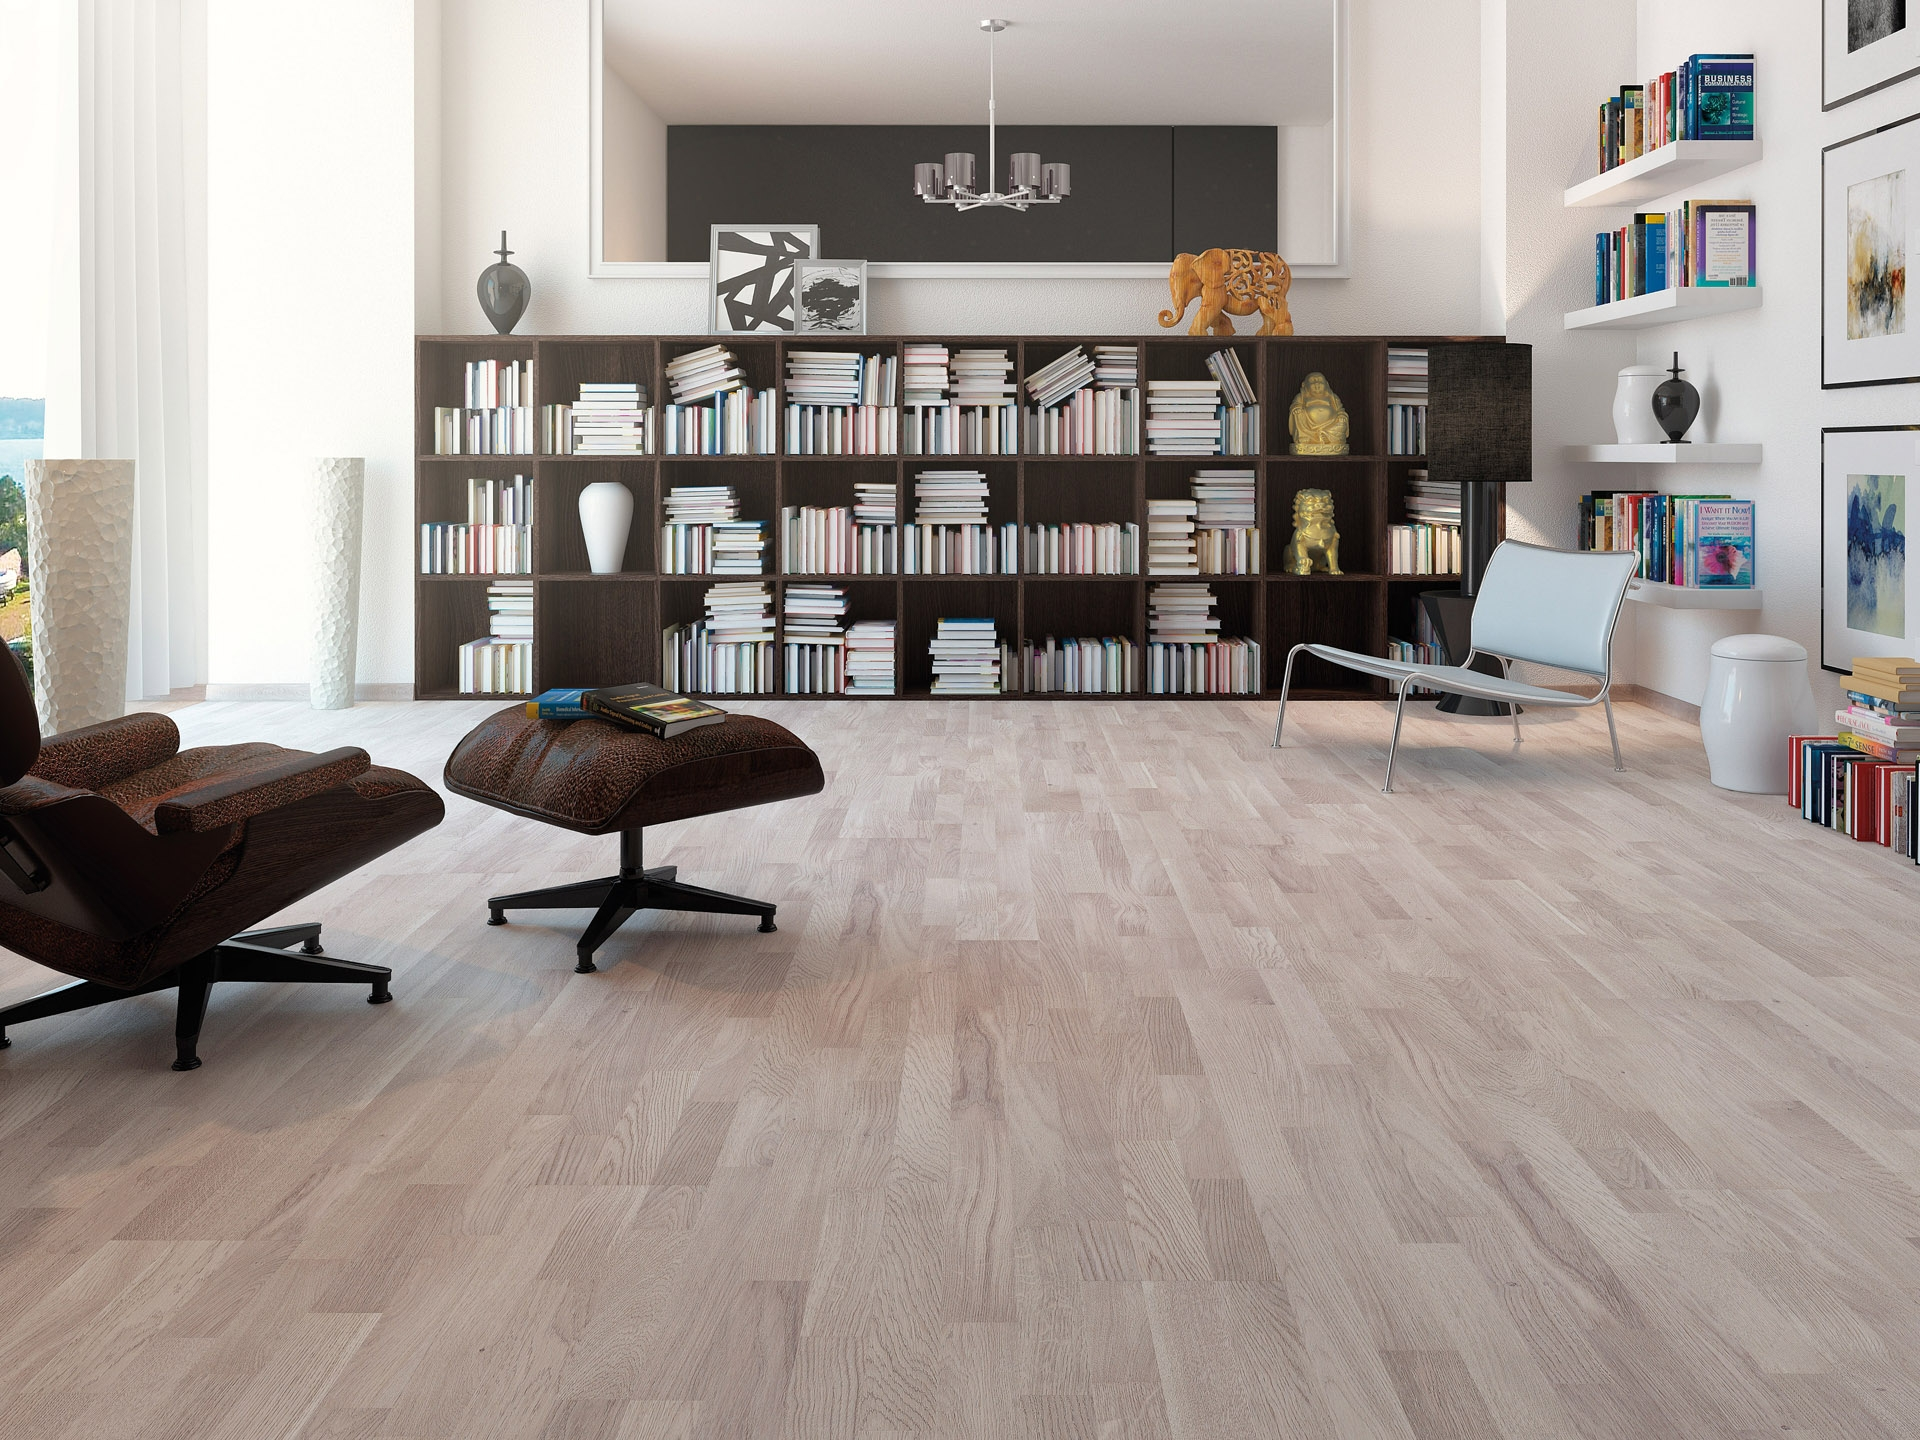 Parquet Barlinek Decor 11 1920x1440 c